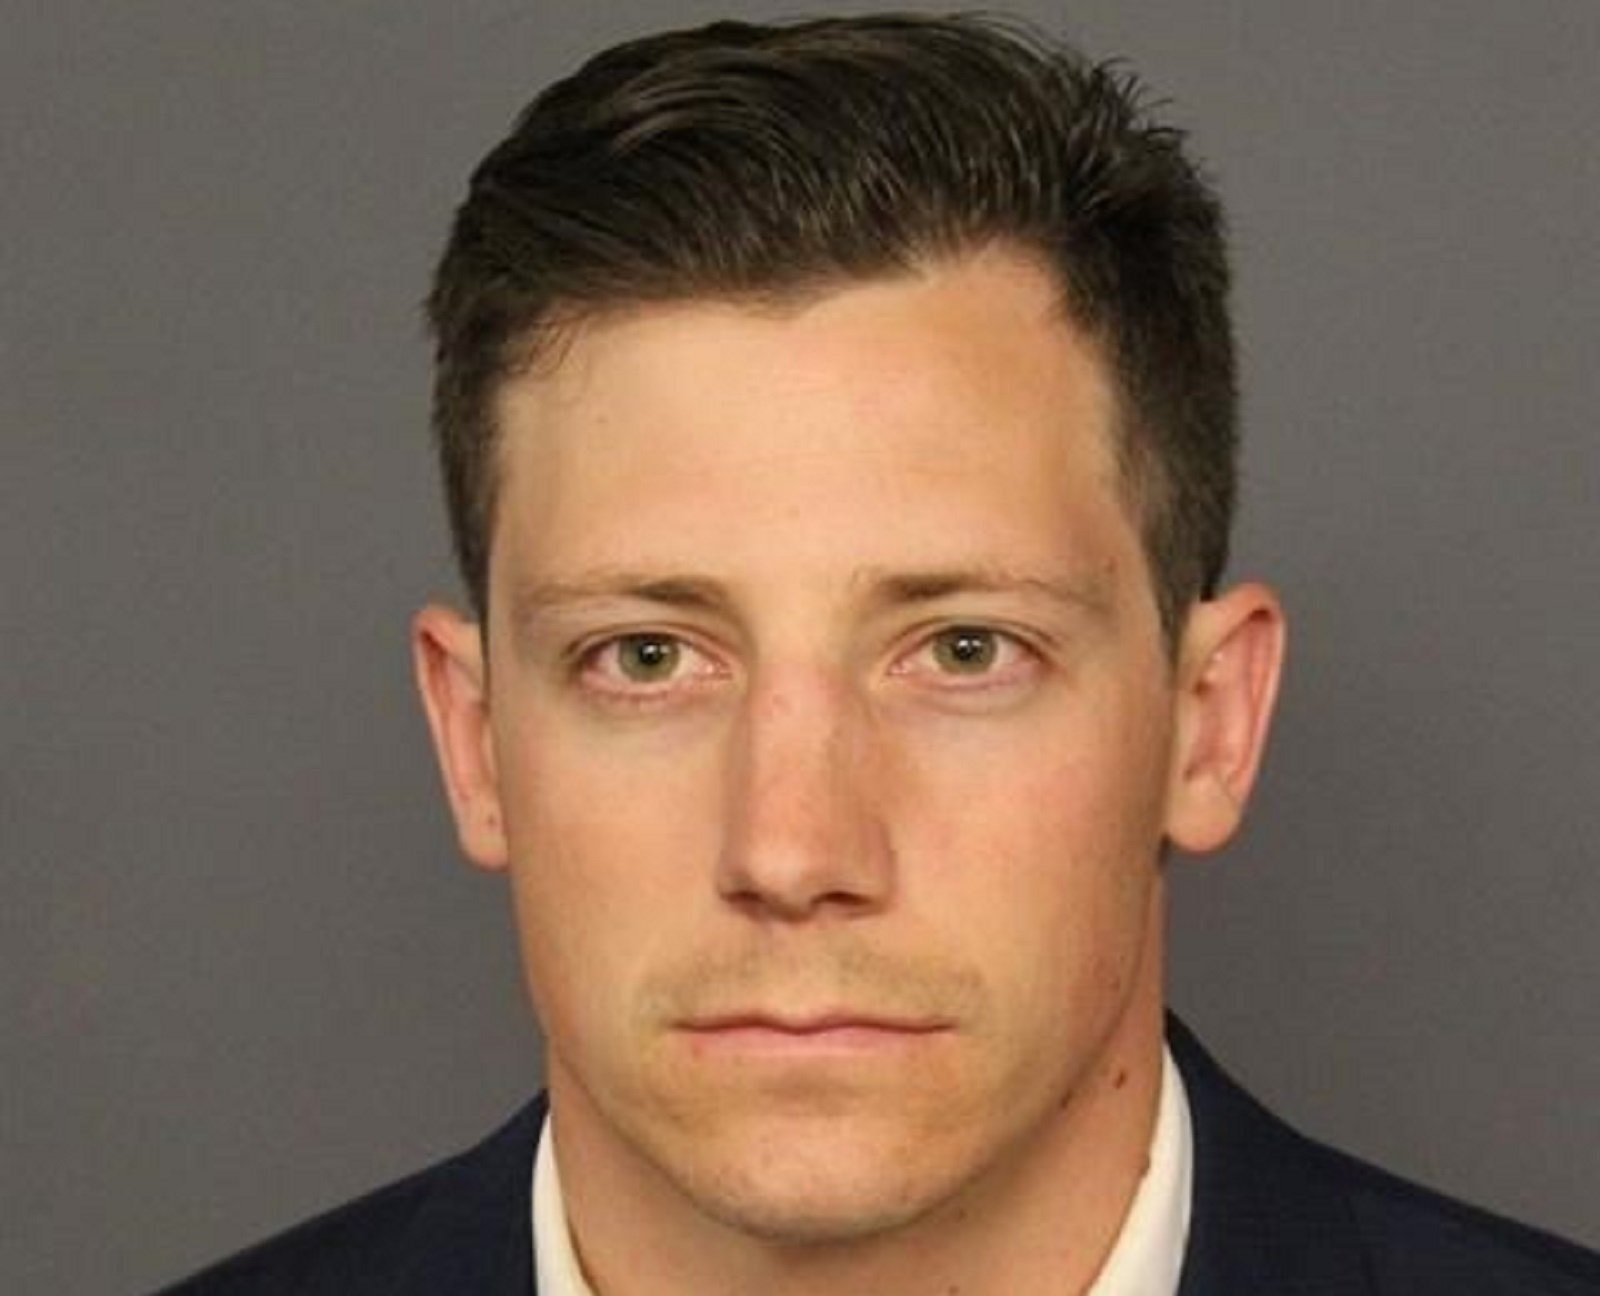 The FBI agent who unintentionally shot someone while dancing in a Denver bar turned himself in to police on Tuesday and is awaiting charges.